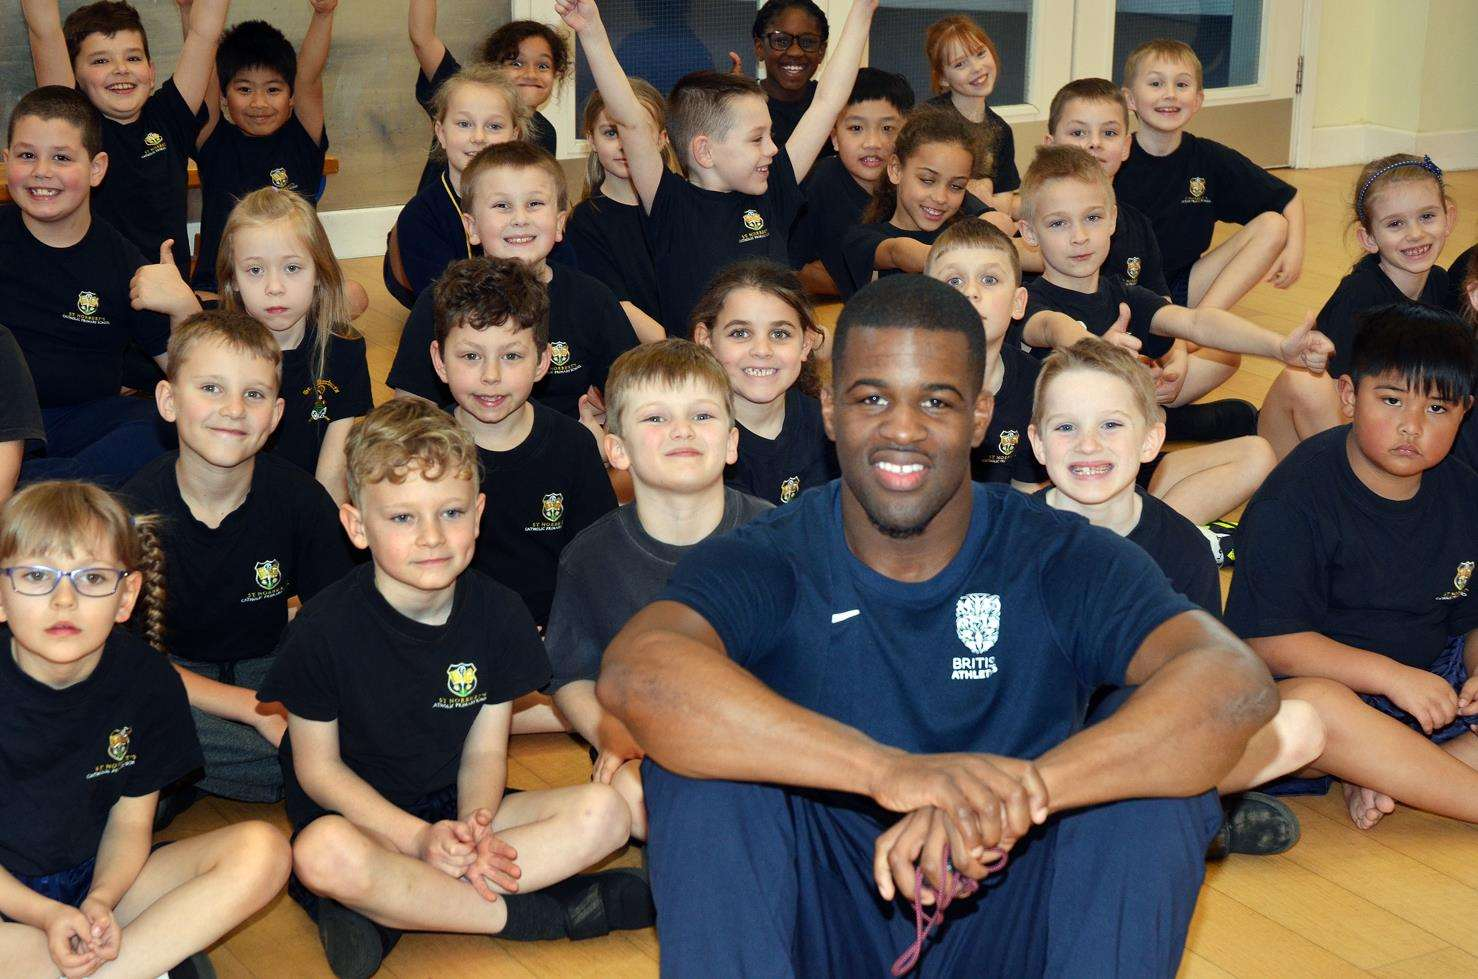 Double Commonwealth gold medallist sprinter Leon Baptiste leads a fitness session with Year 2 and 3 pupils at St Norbert's Catholic Primary School, Spalding. Photo by Tim Wilson. SG-050319-027TW